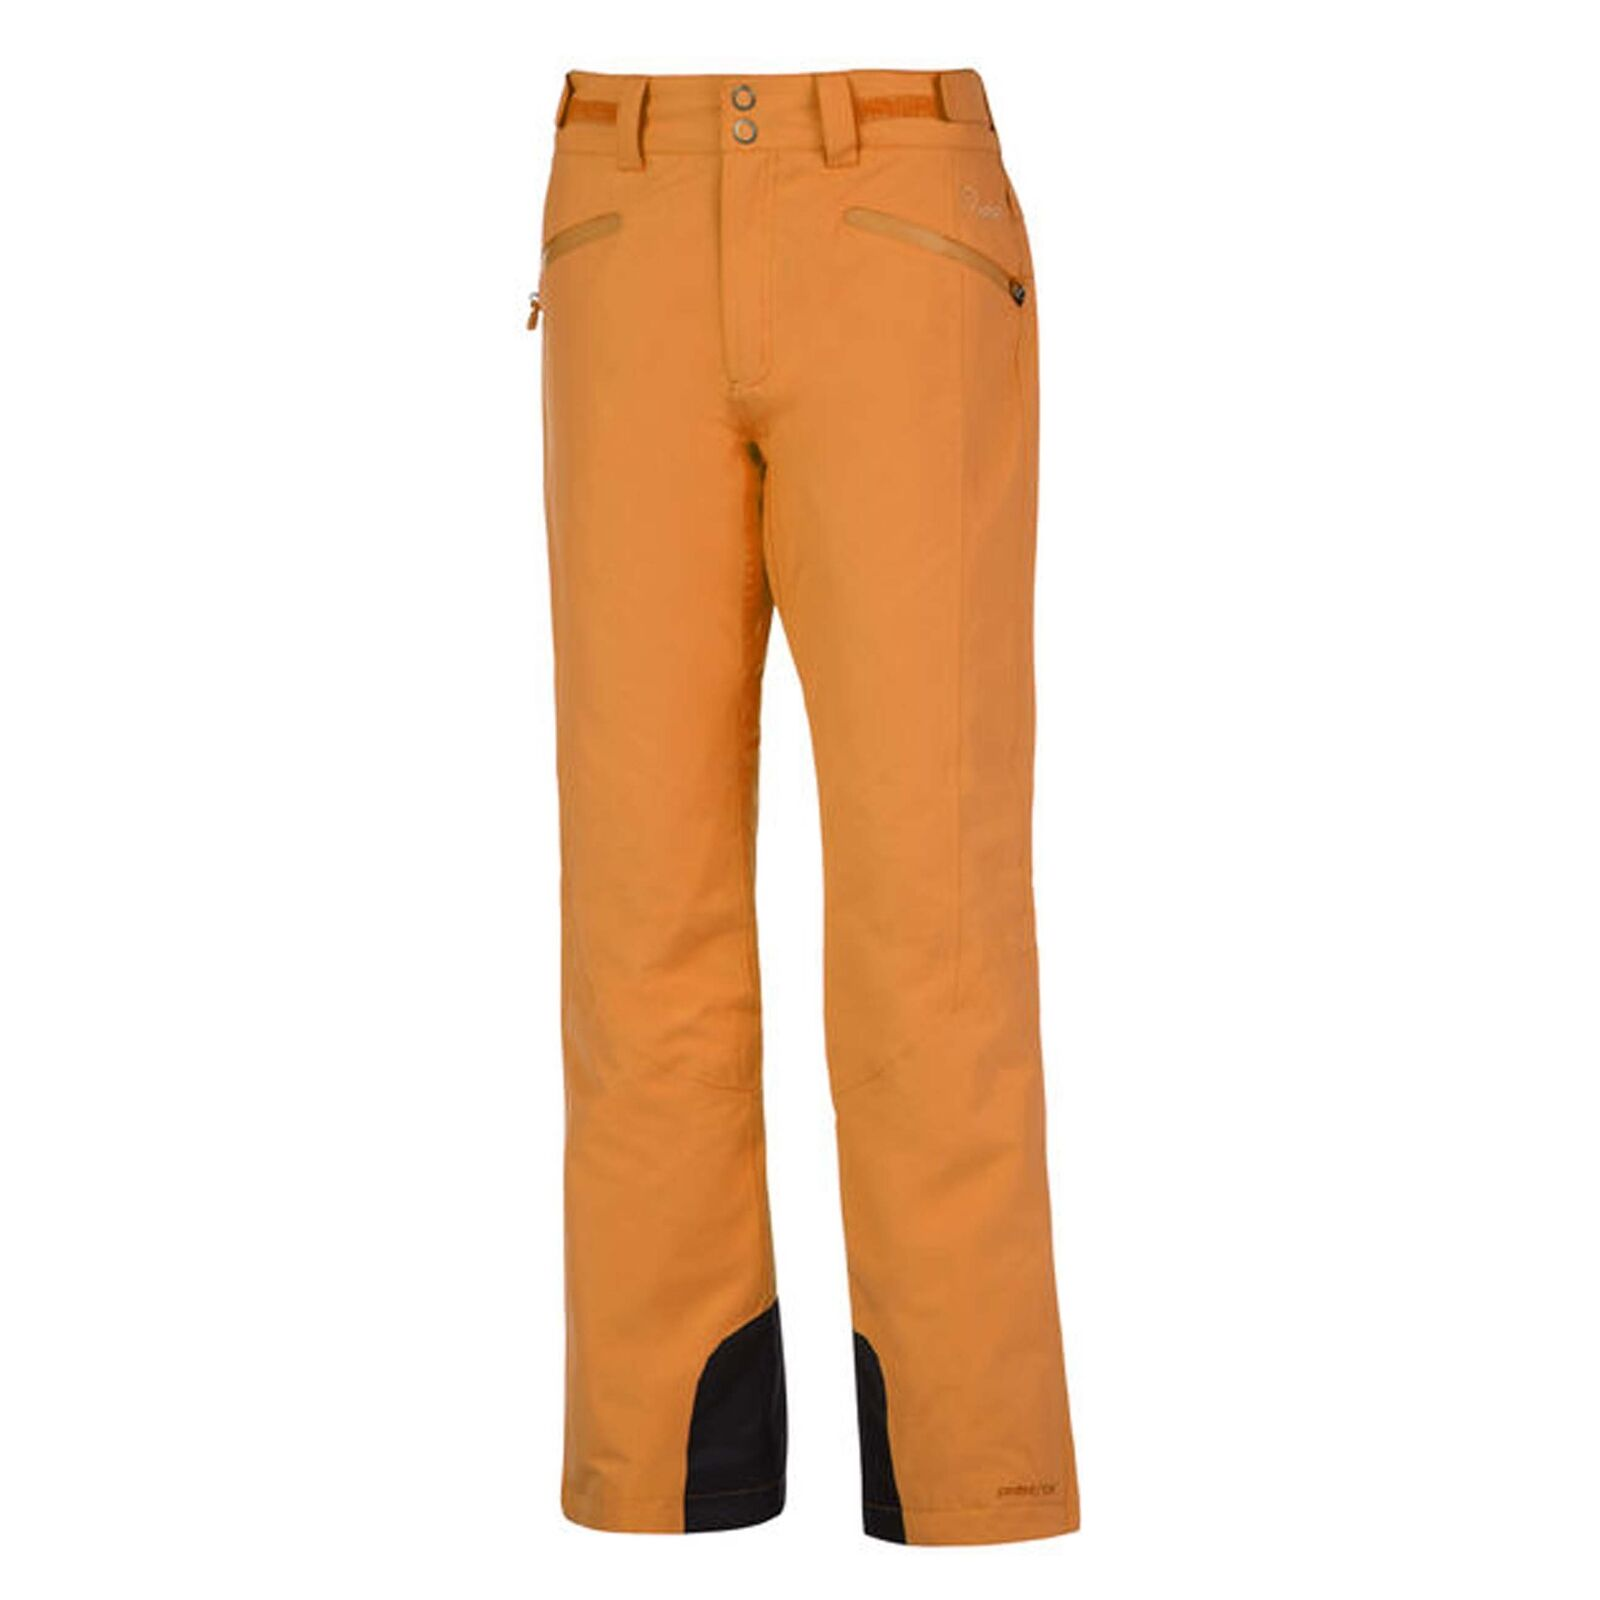 Predest Womens Kensington Ski Snowboard Snow Pants Laranja